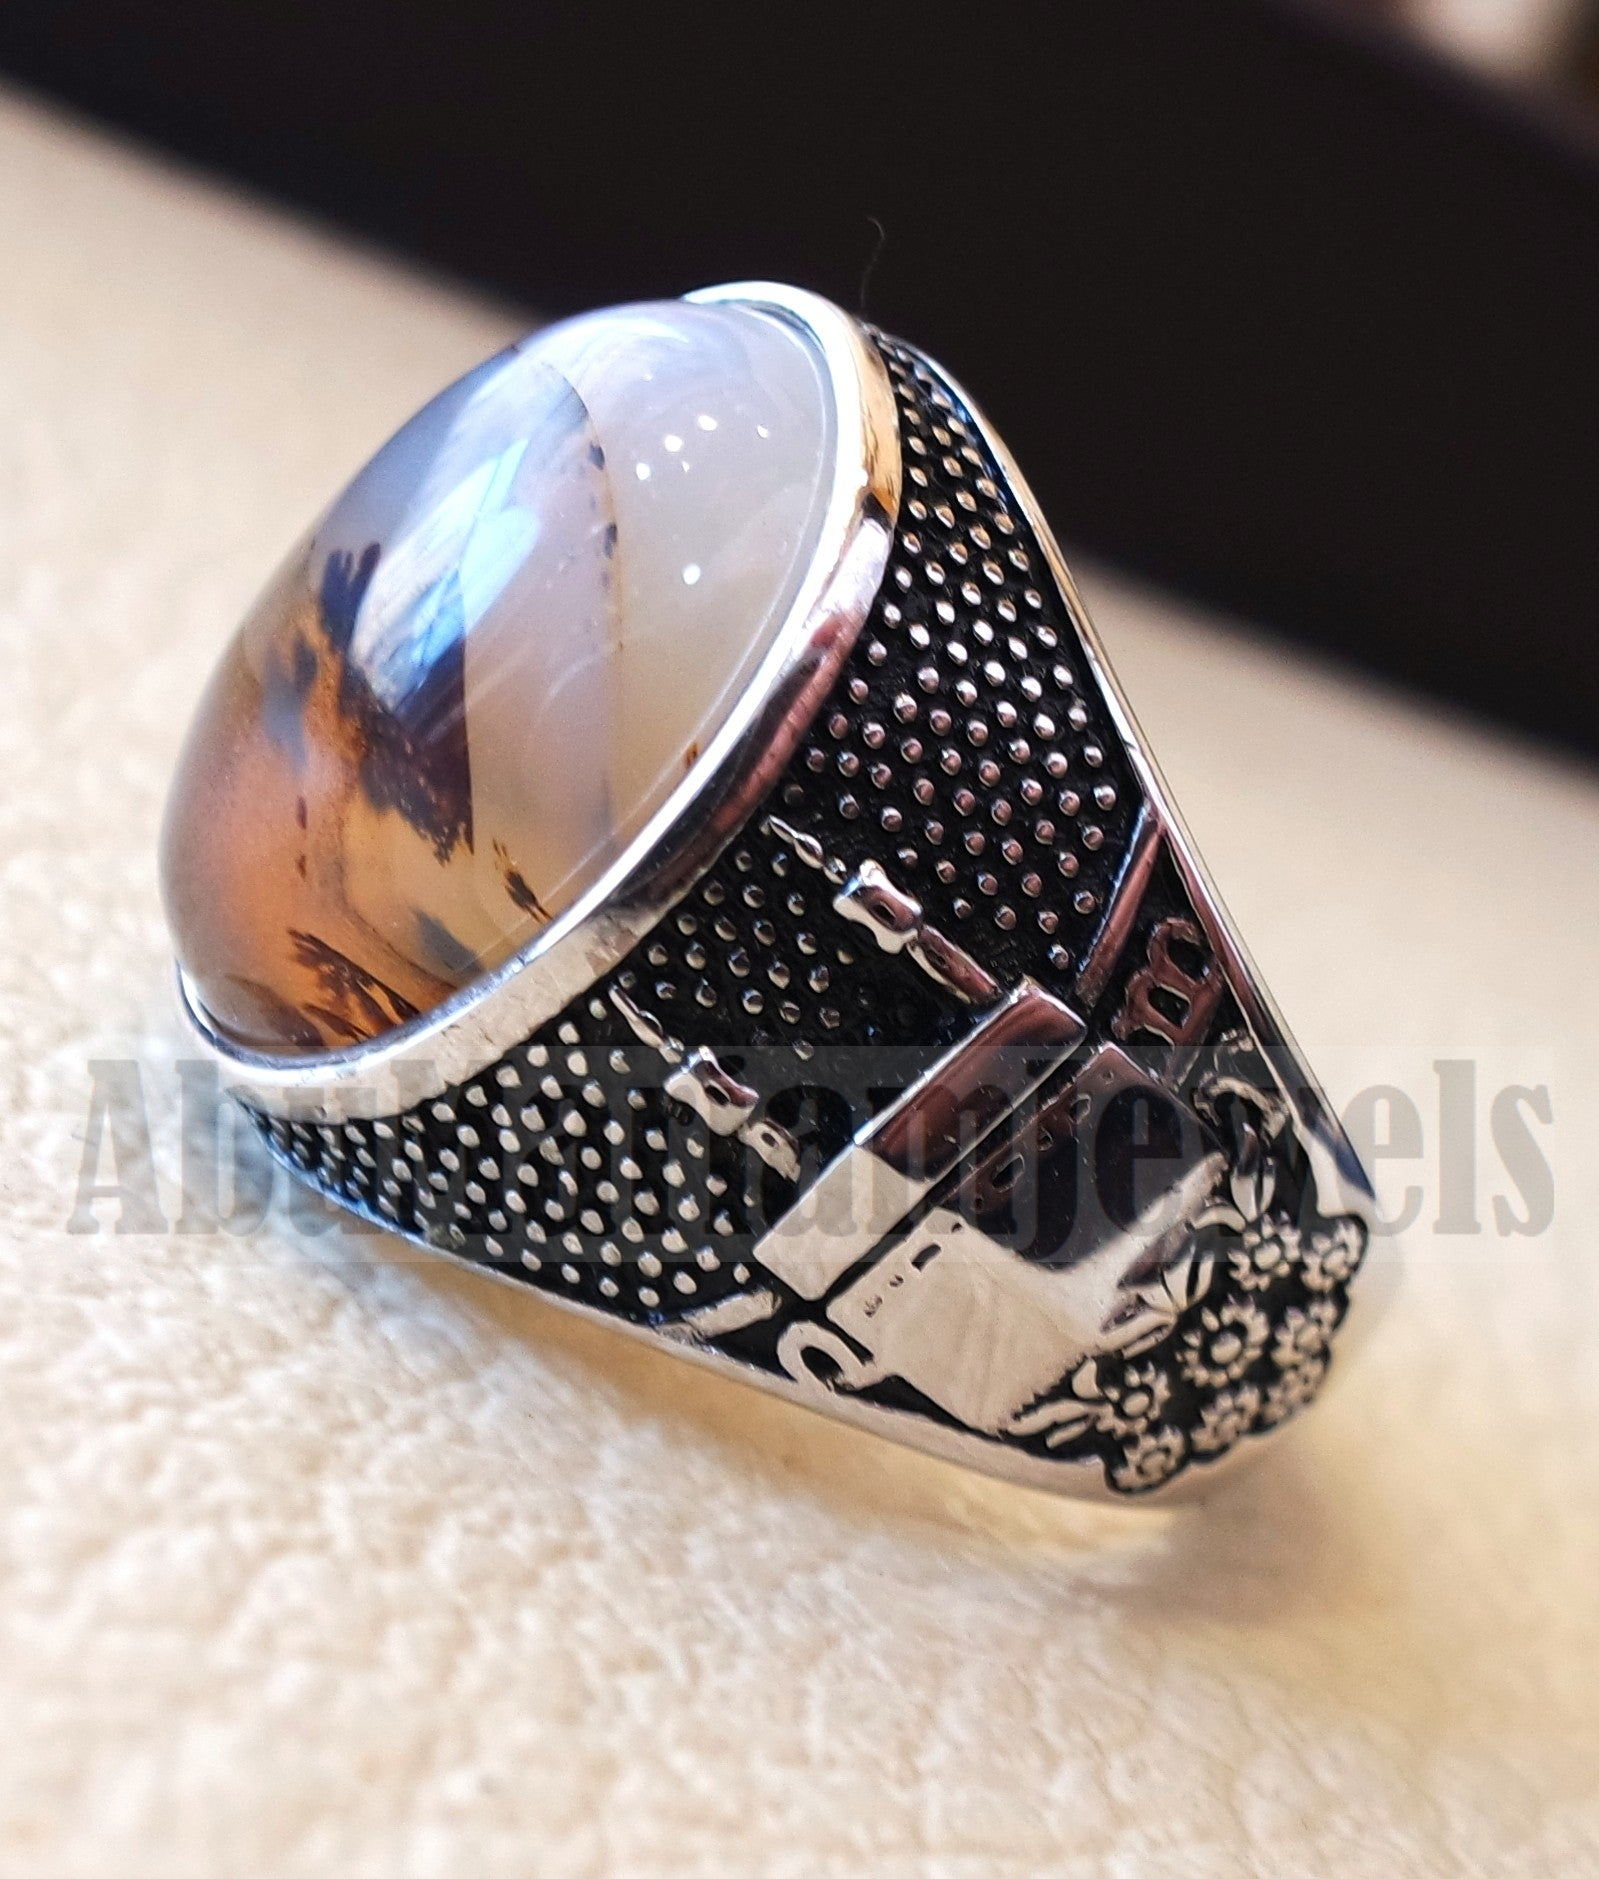 yamani aqeeq natural multi color agate gemstone men muslim mosque ring sterling silver 925 jewelry all sizes عقيق يماني الكعبة